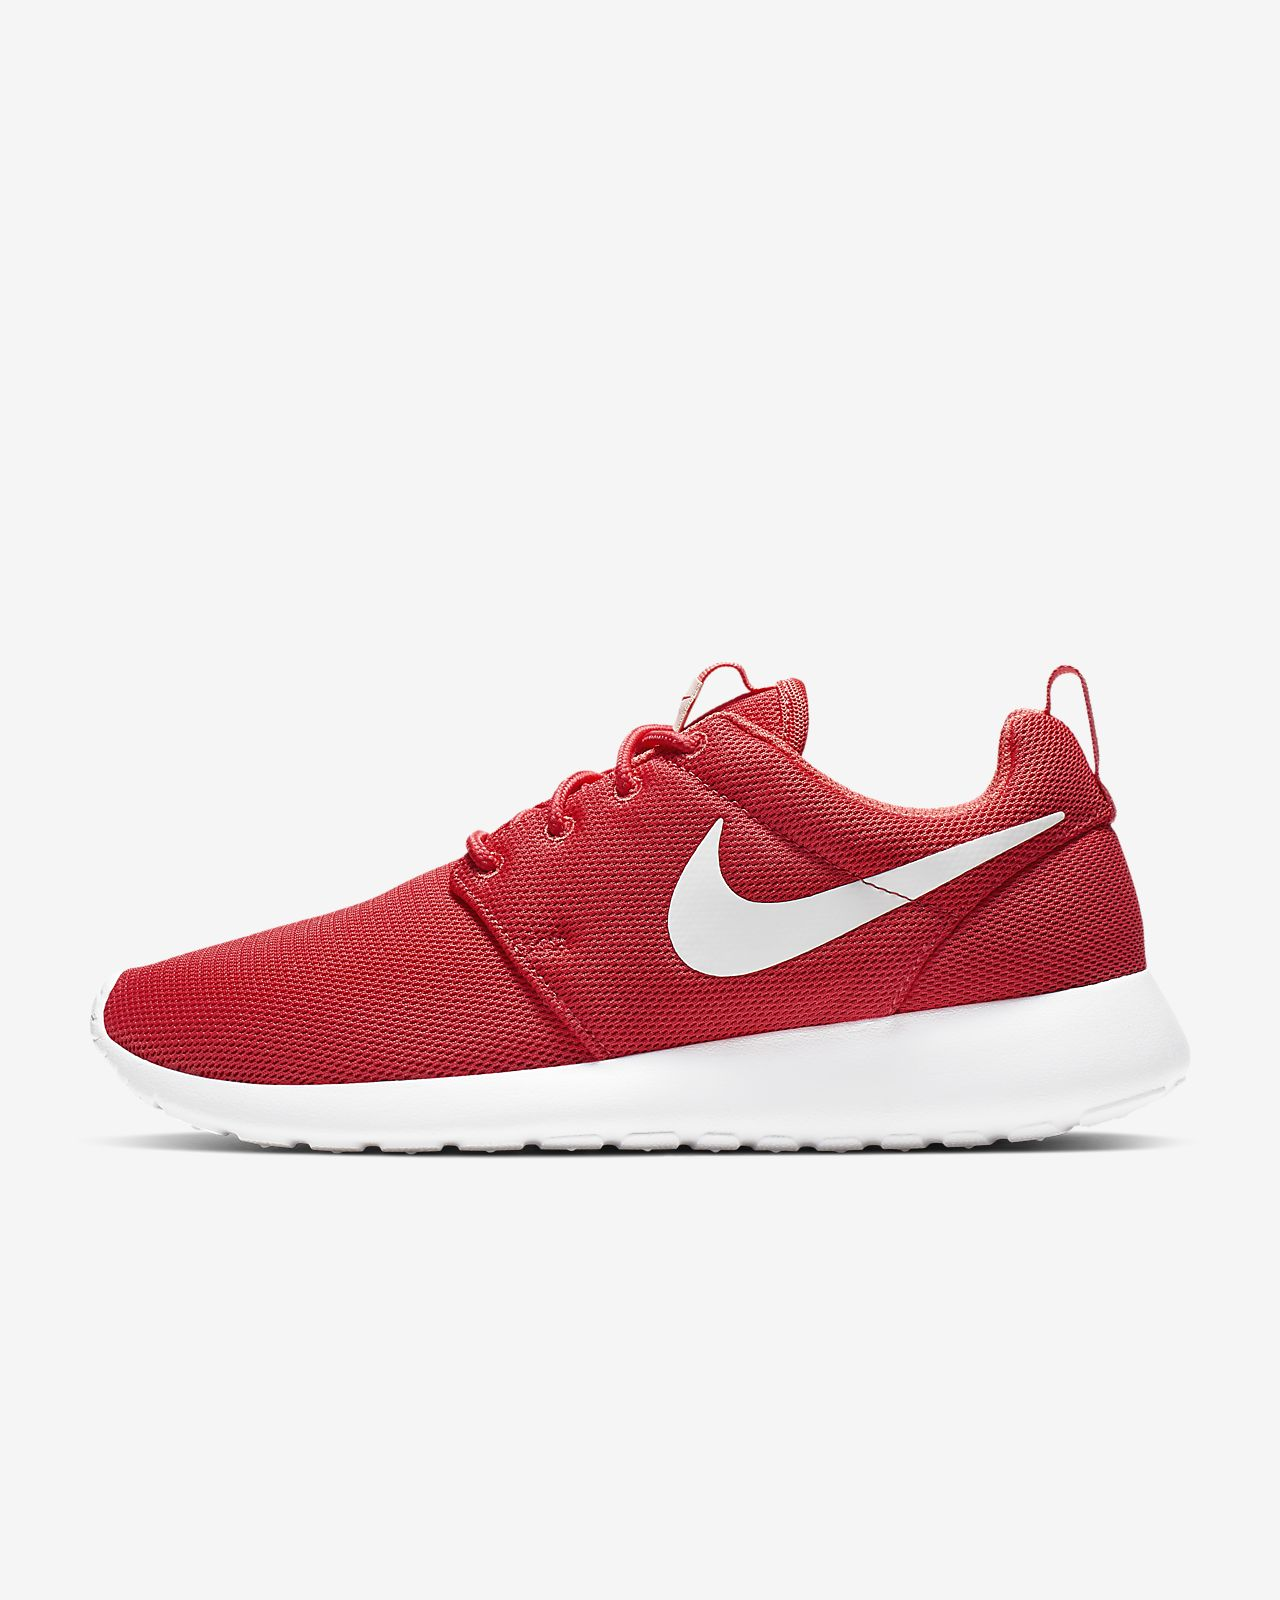 pretty nice e96f3 12e38 Nike Roshe One Women s Shoe. Nike.com